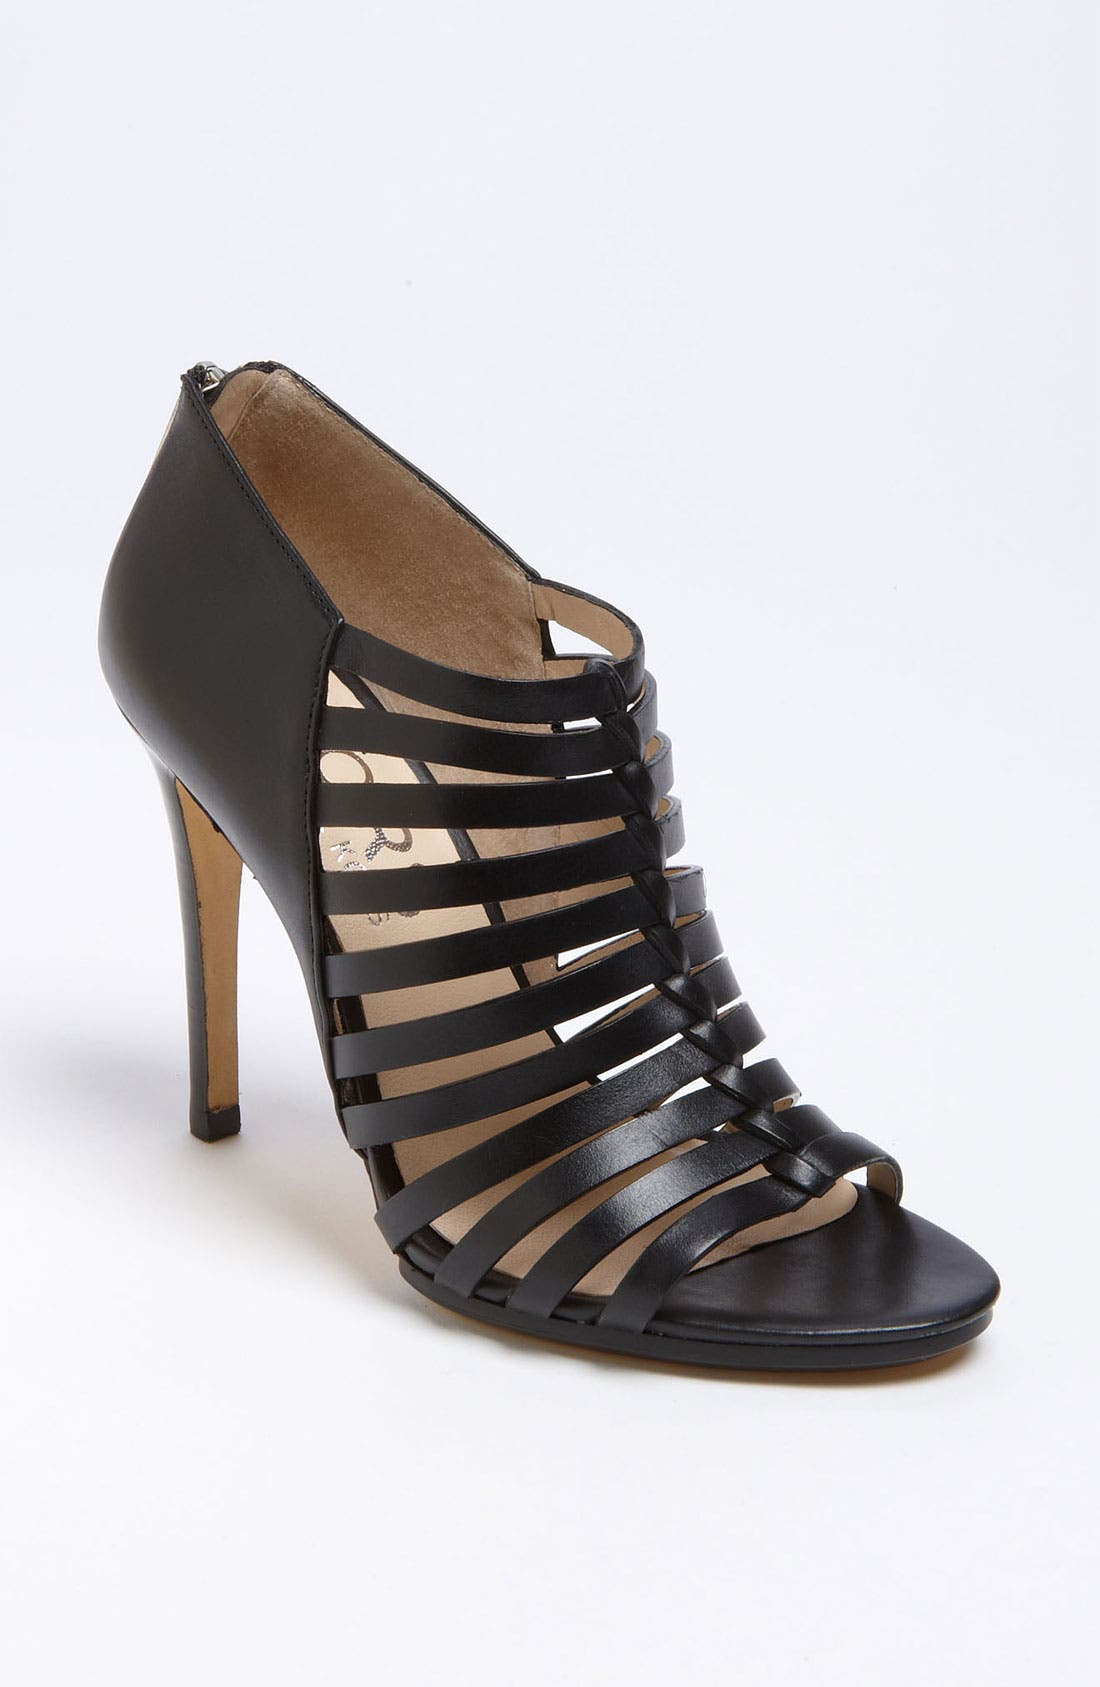 Alternate Image 1 Selected - KORS Michael Kors 'Fagan' Sandal